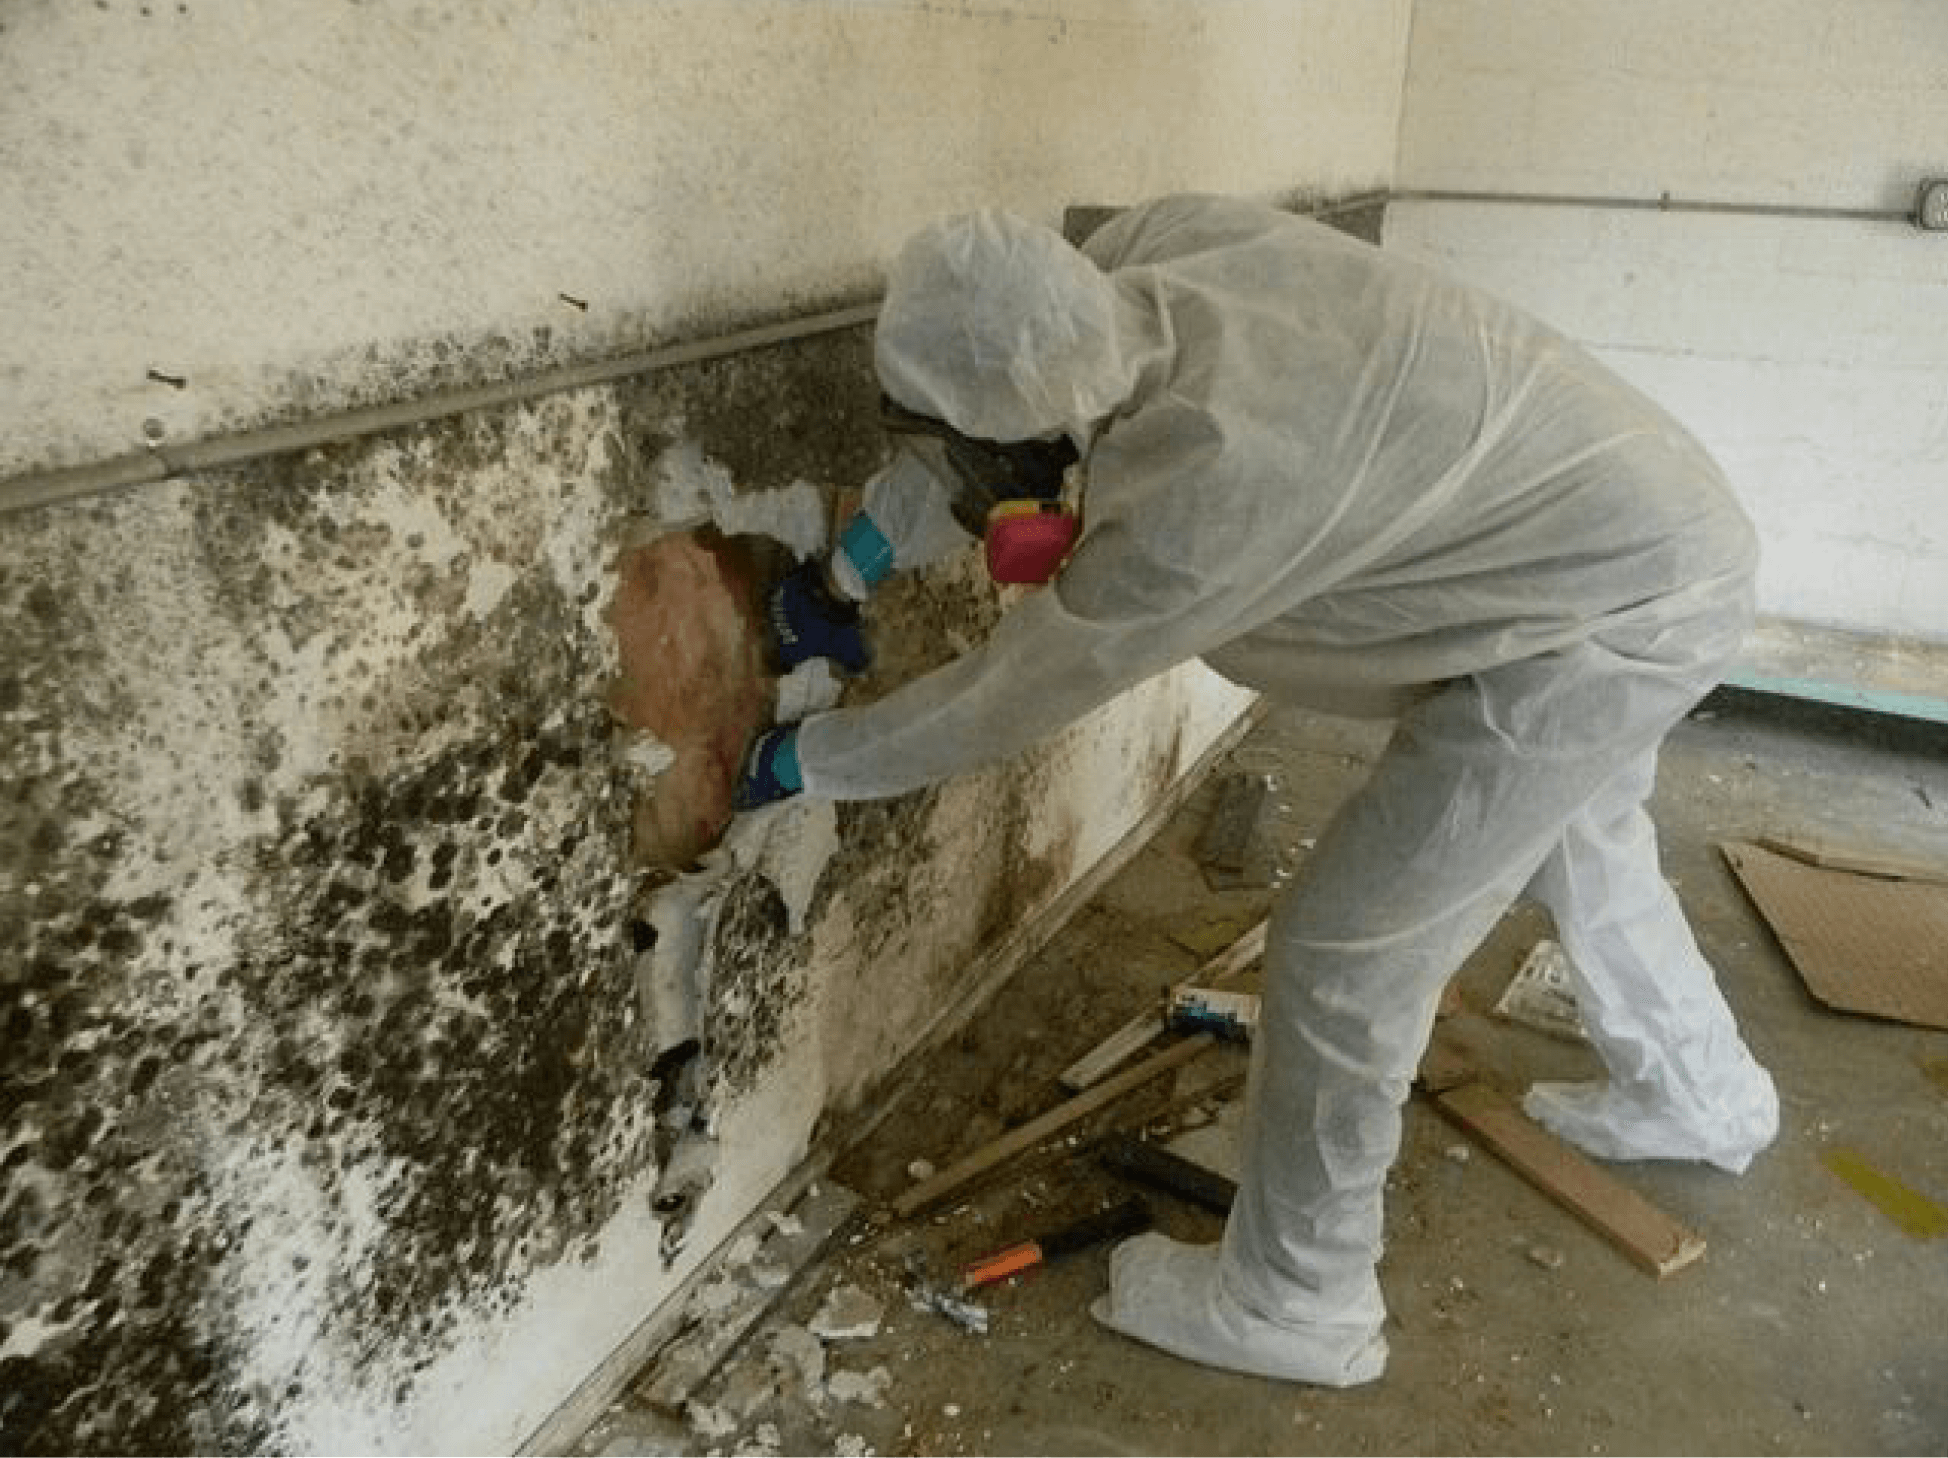 Mold remediation is the only way to be 100% sure all the spores were killed.